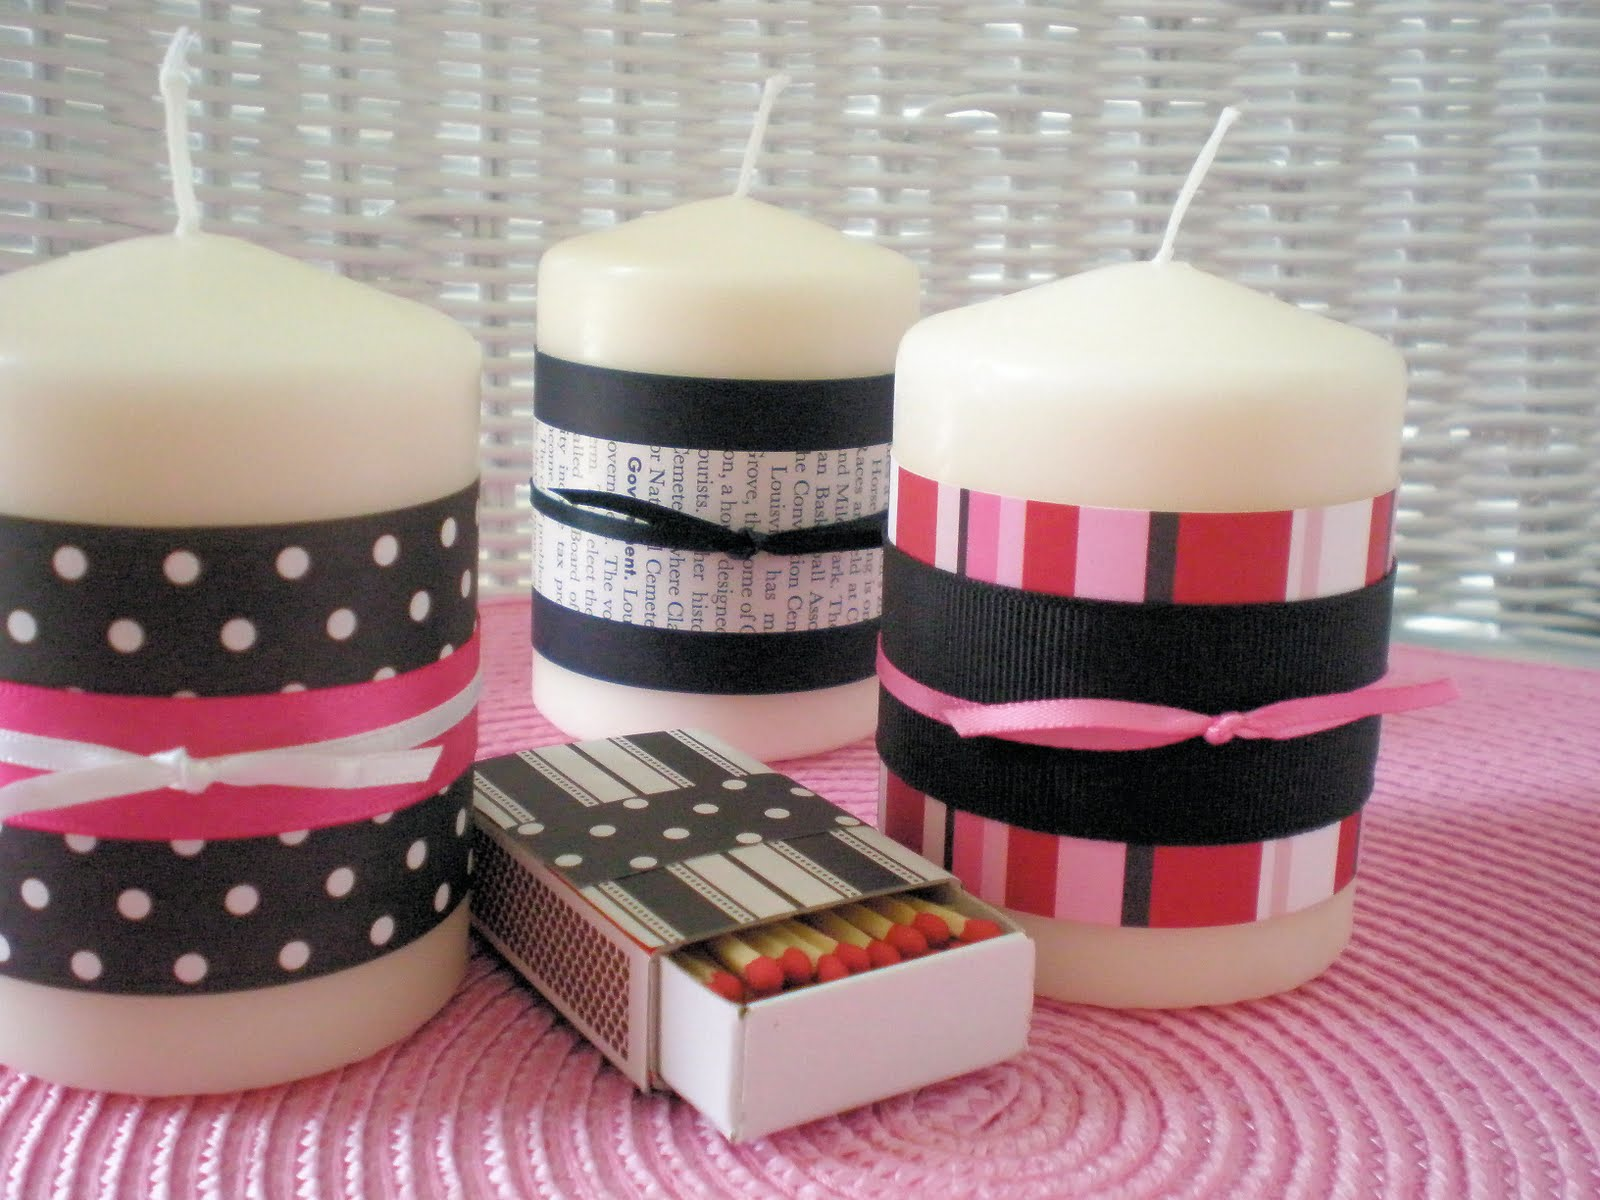 Kids Craft: Decorated Candles and Matches - Mothers Day Project ...